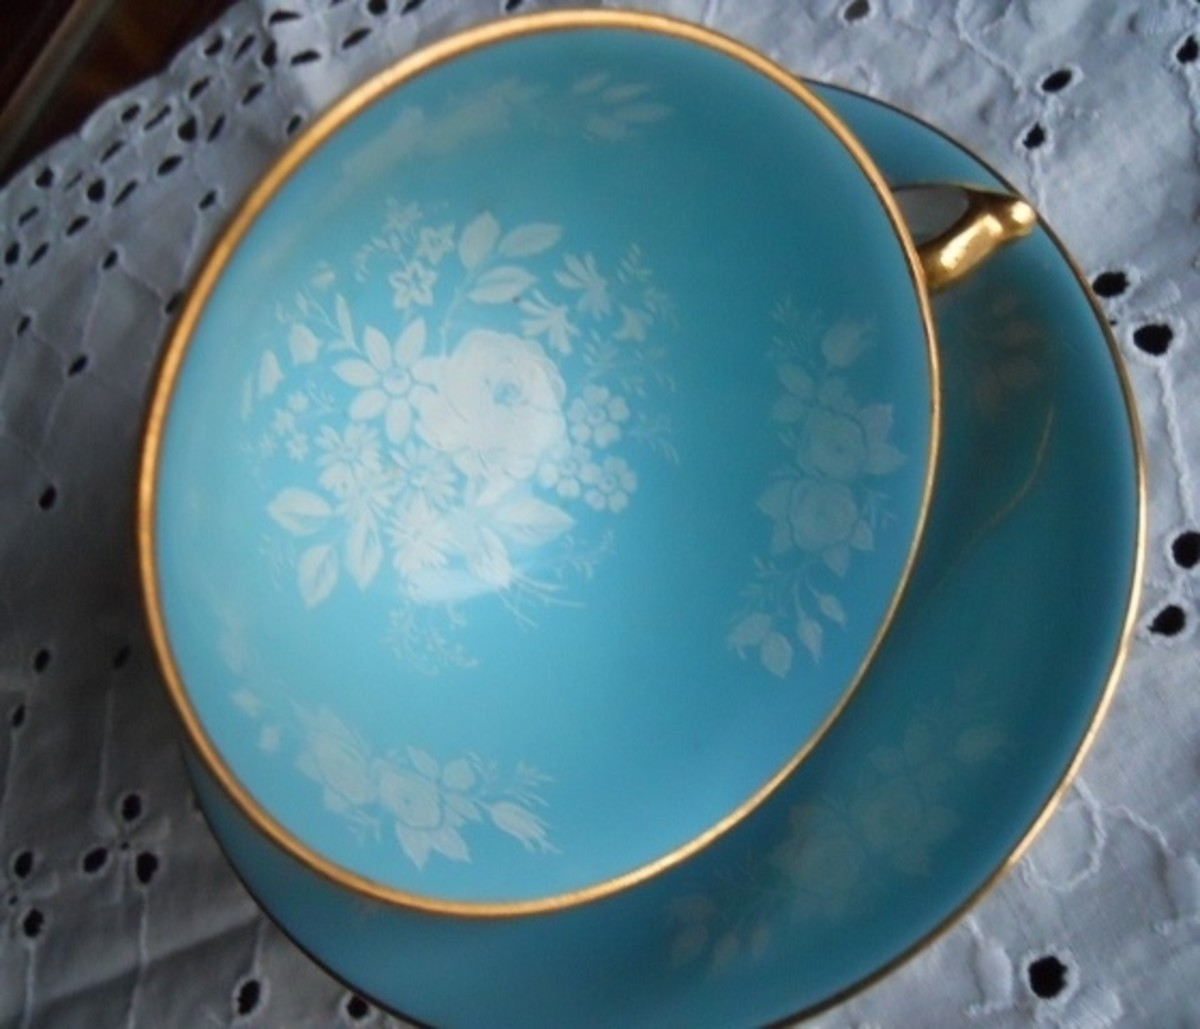 Purchased in 1970s —May Be Older—A British manufacturer of bone china, founded in 1775.